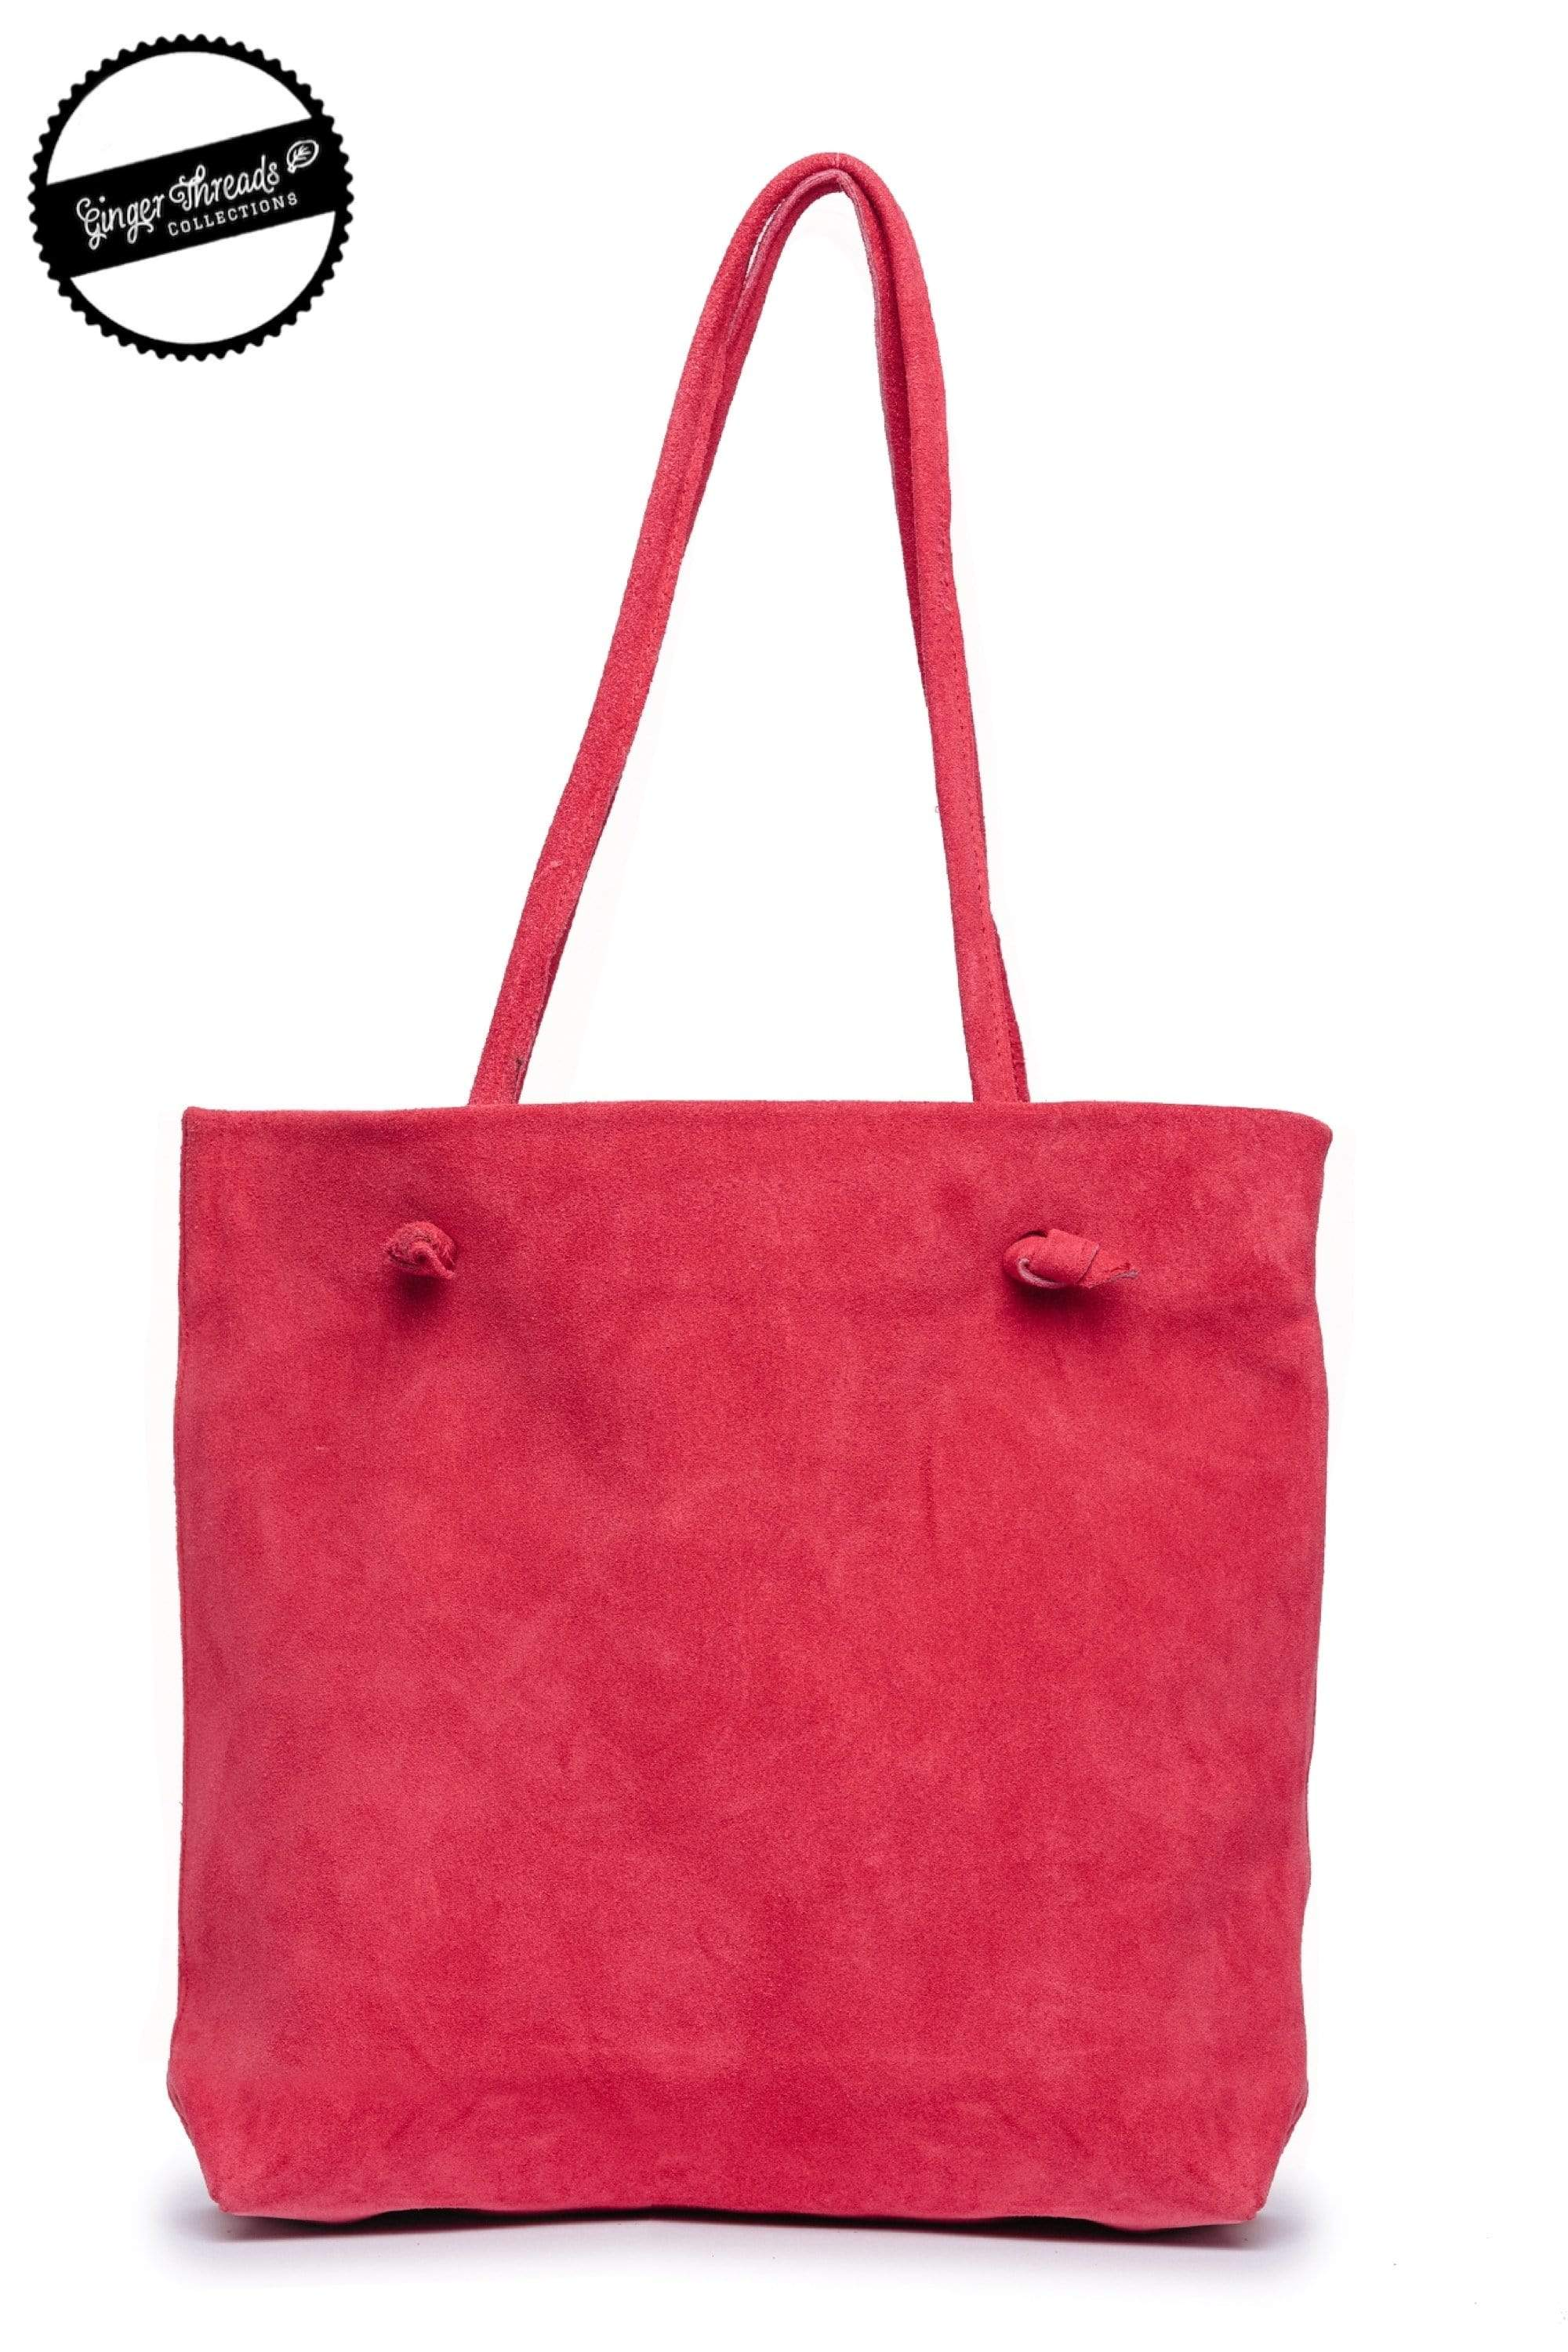 Ginger Threads Collections purse Deep Raspberry Suede Tote